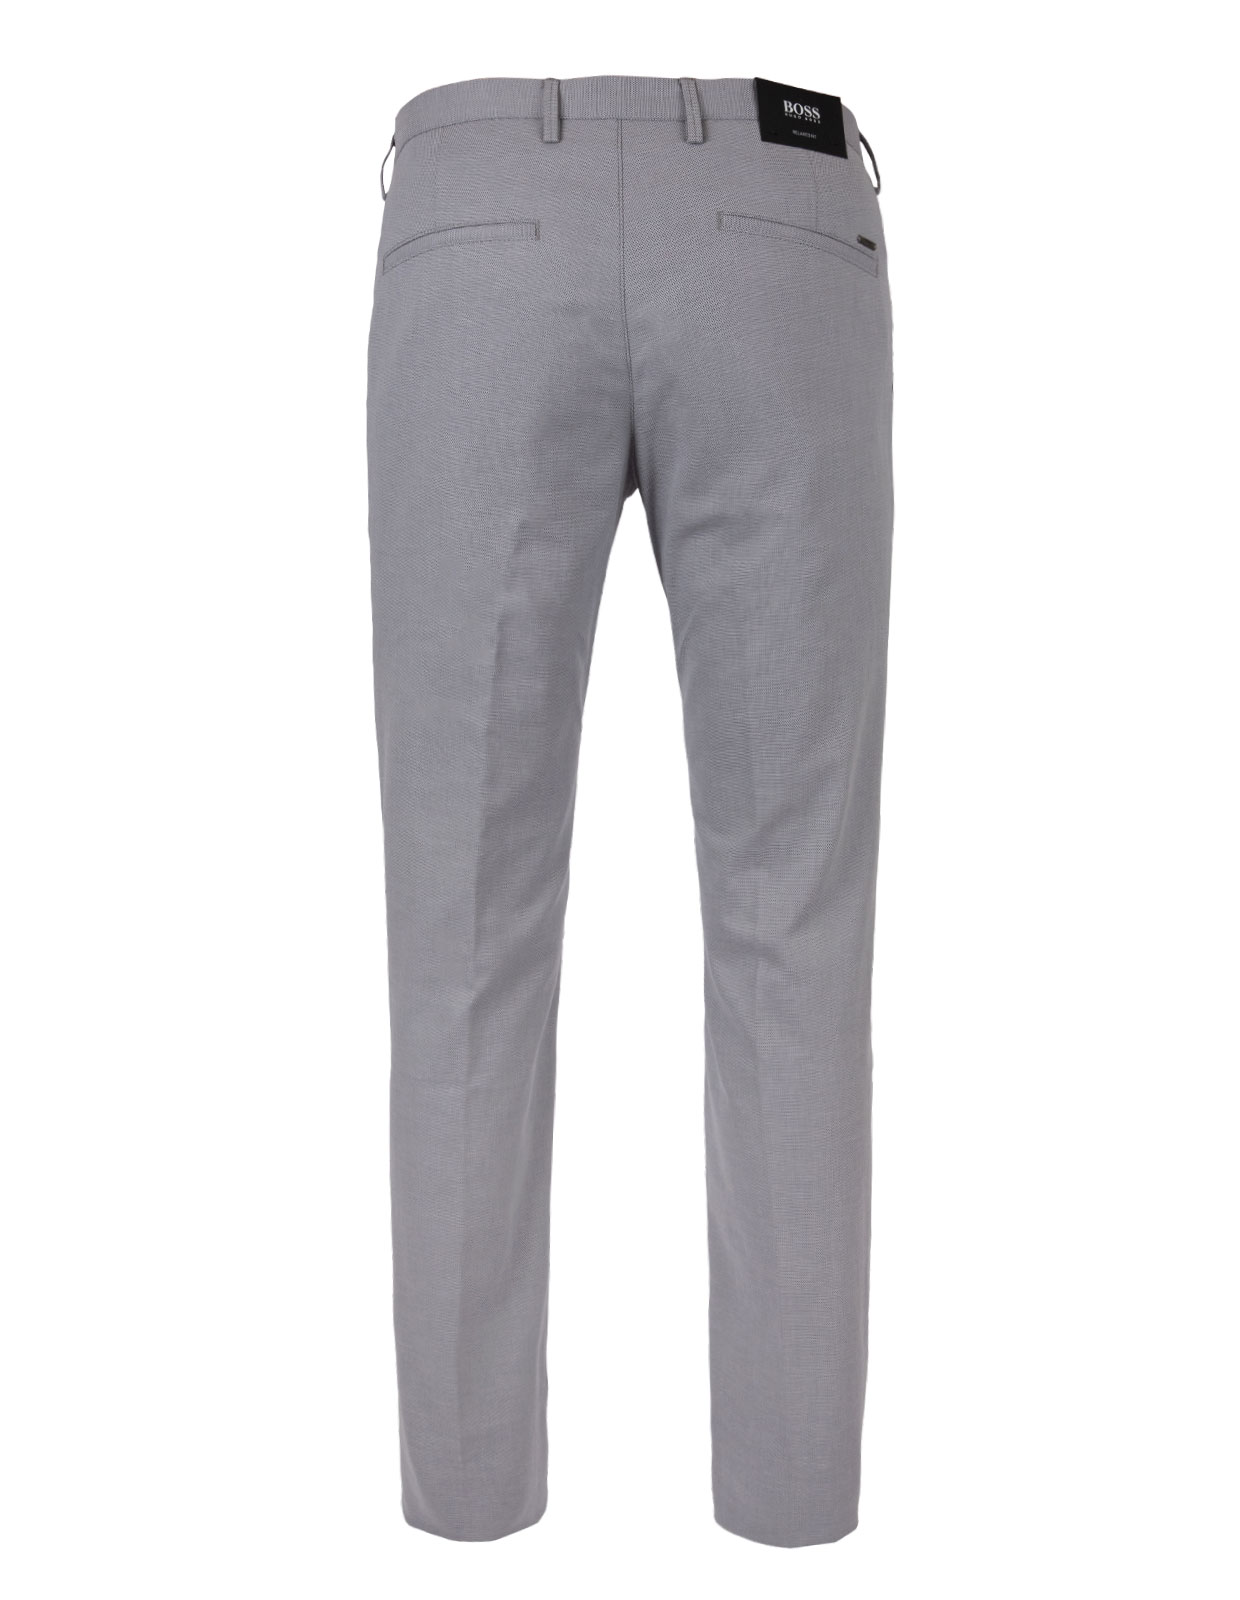 Rice-3-W Cotton Stretch Chinos Medium Grey